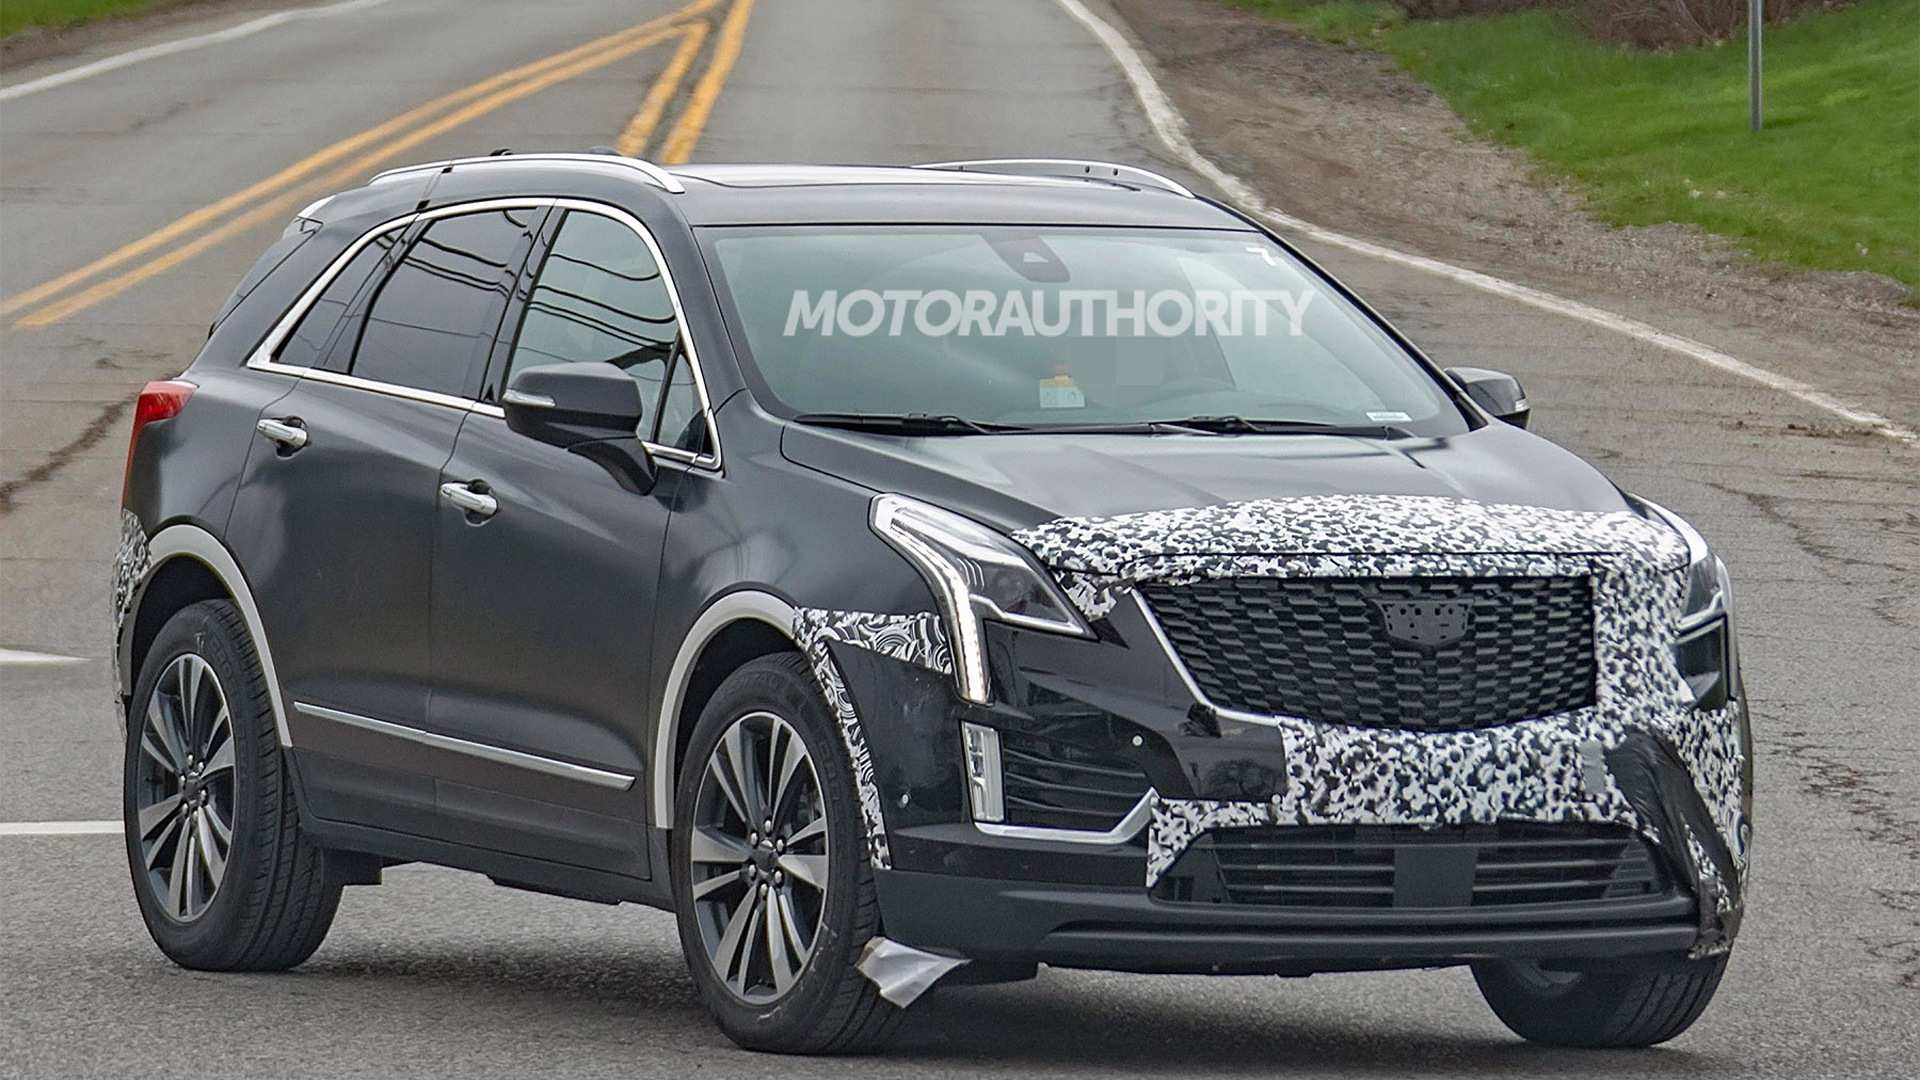 18 Best Review 2019 Spy Shots Cadillac Xt5 Engine for 2019 Spy Shots Cadillac Xt5